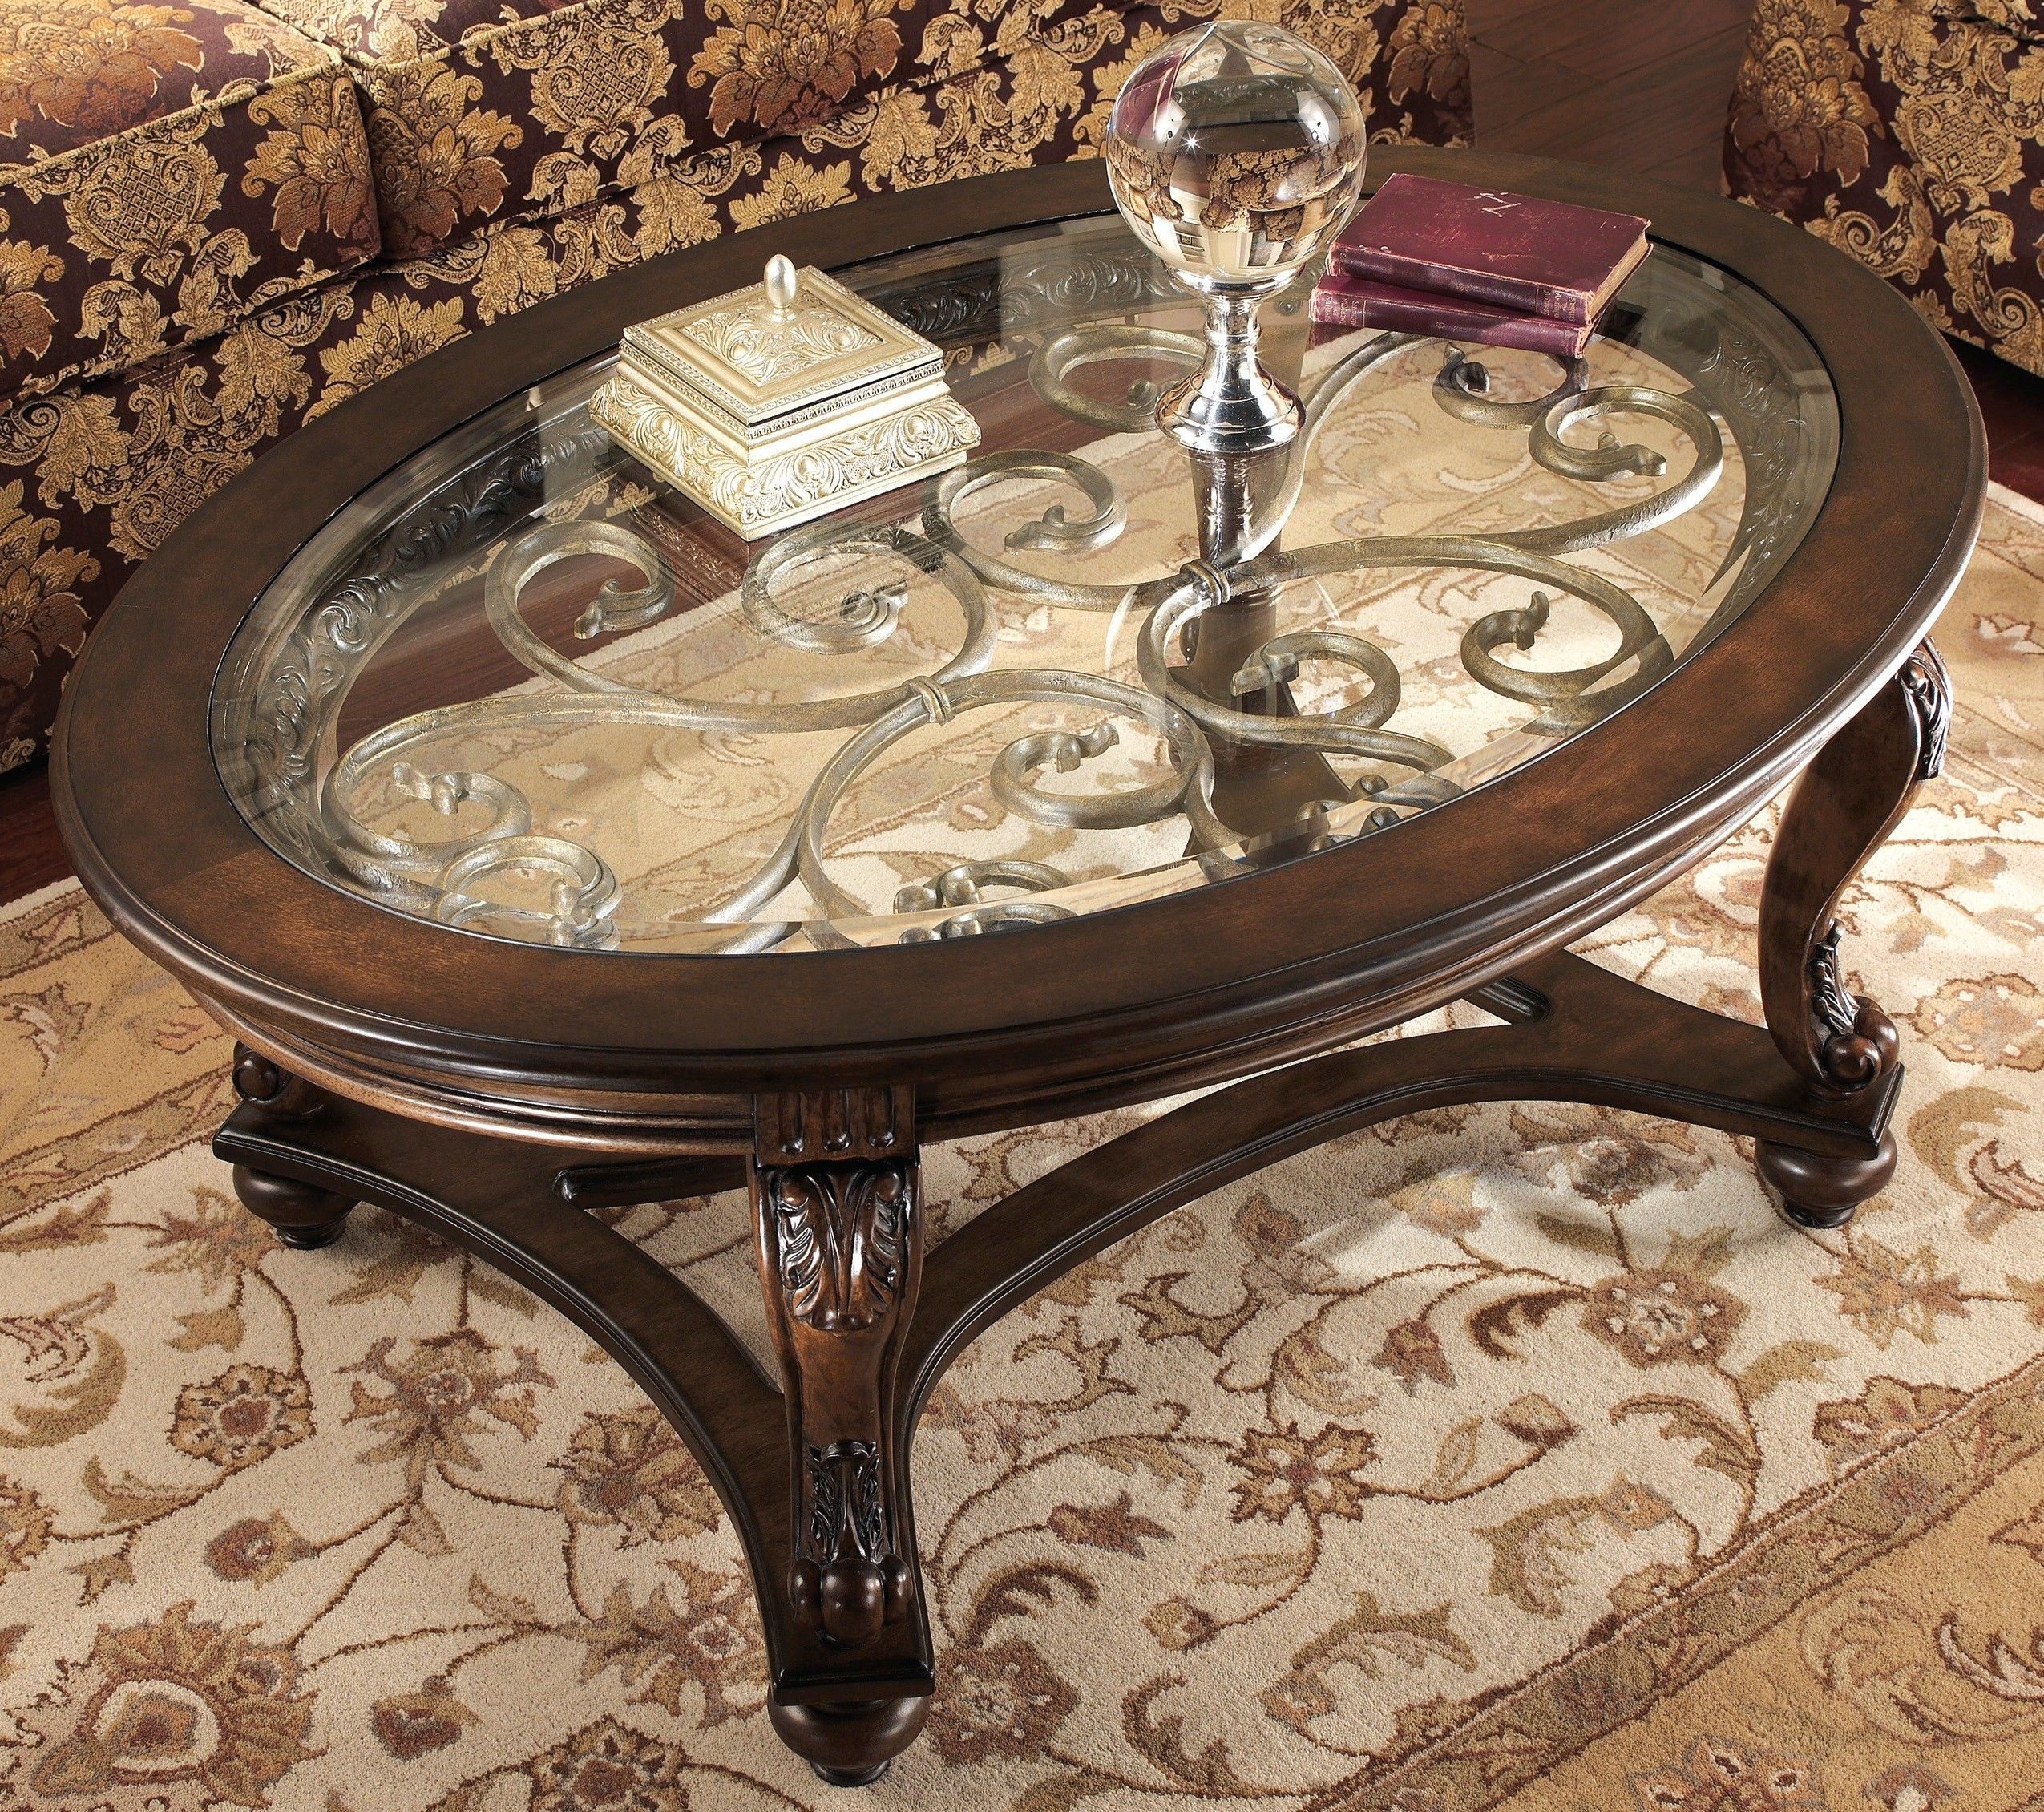 Cool Inspirational Ashley Furniture Round Coffee Table 75 With Additional Small Home Decor Inspirat Oval Wood Coffee Table Oval Coffee Tables Coffee Table Wood